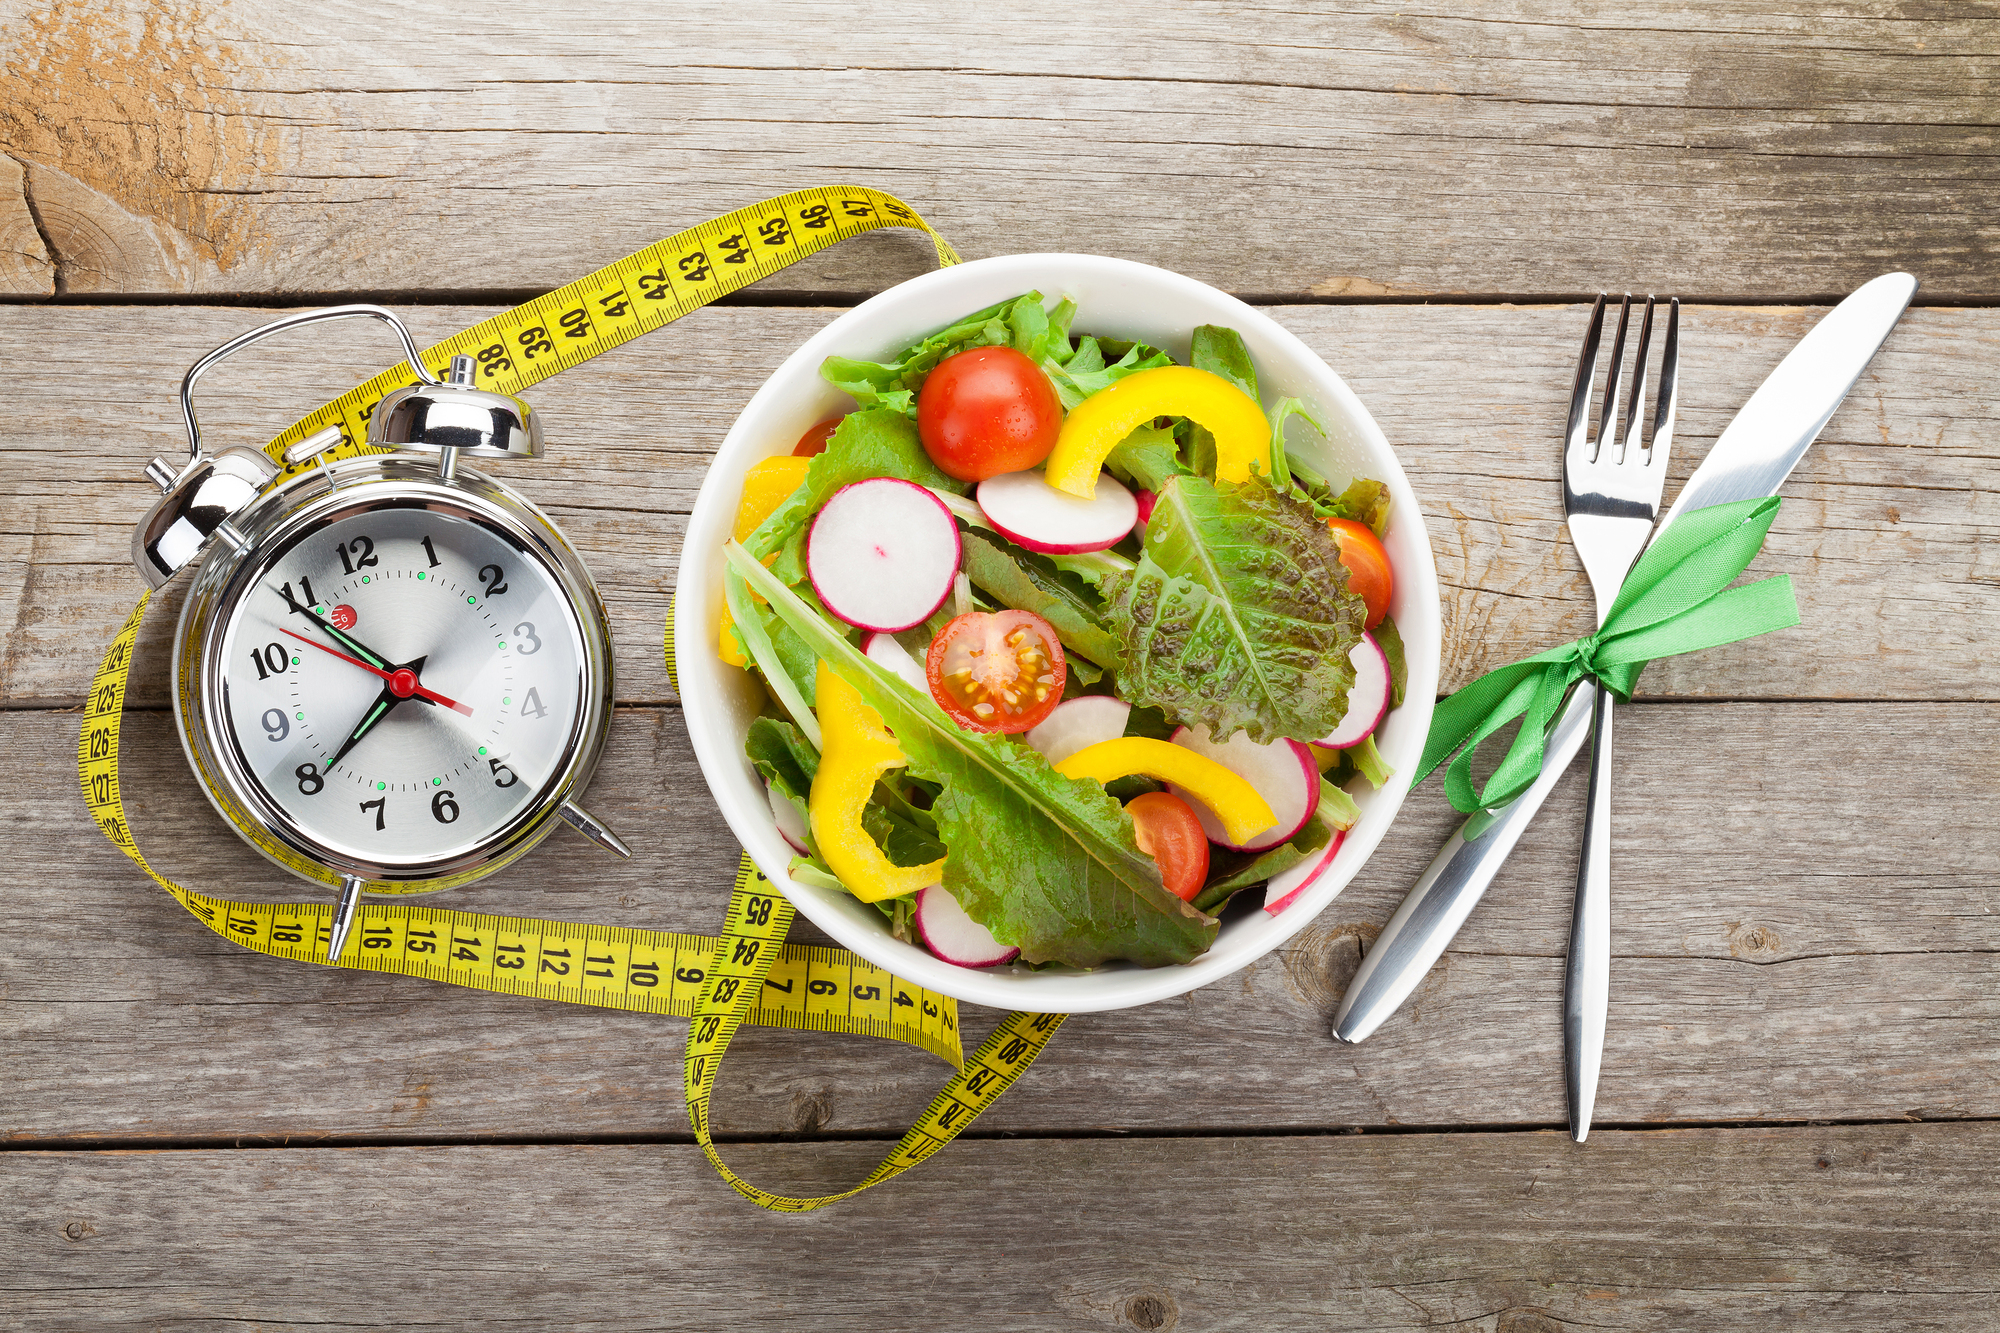 Eating healthy food and maintaining an appropriate weight